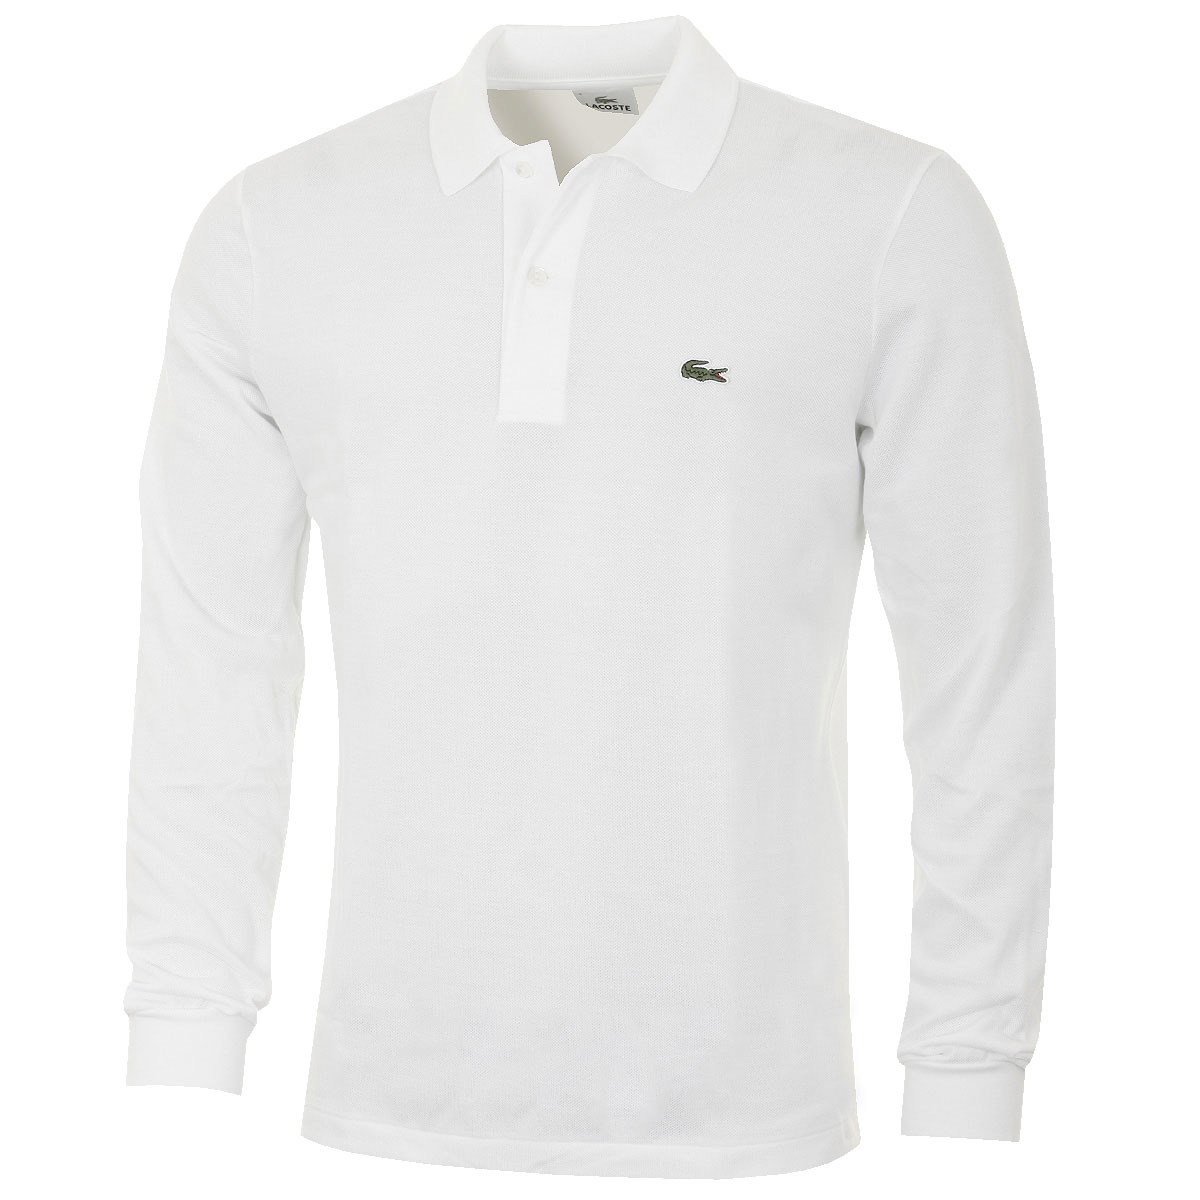 d0d21087 Details about Lacoste Mens 2019 Classic Cotton Long Sleeve L1312 Polo Shirt